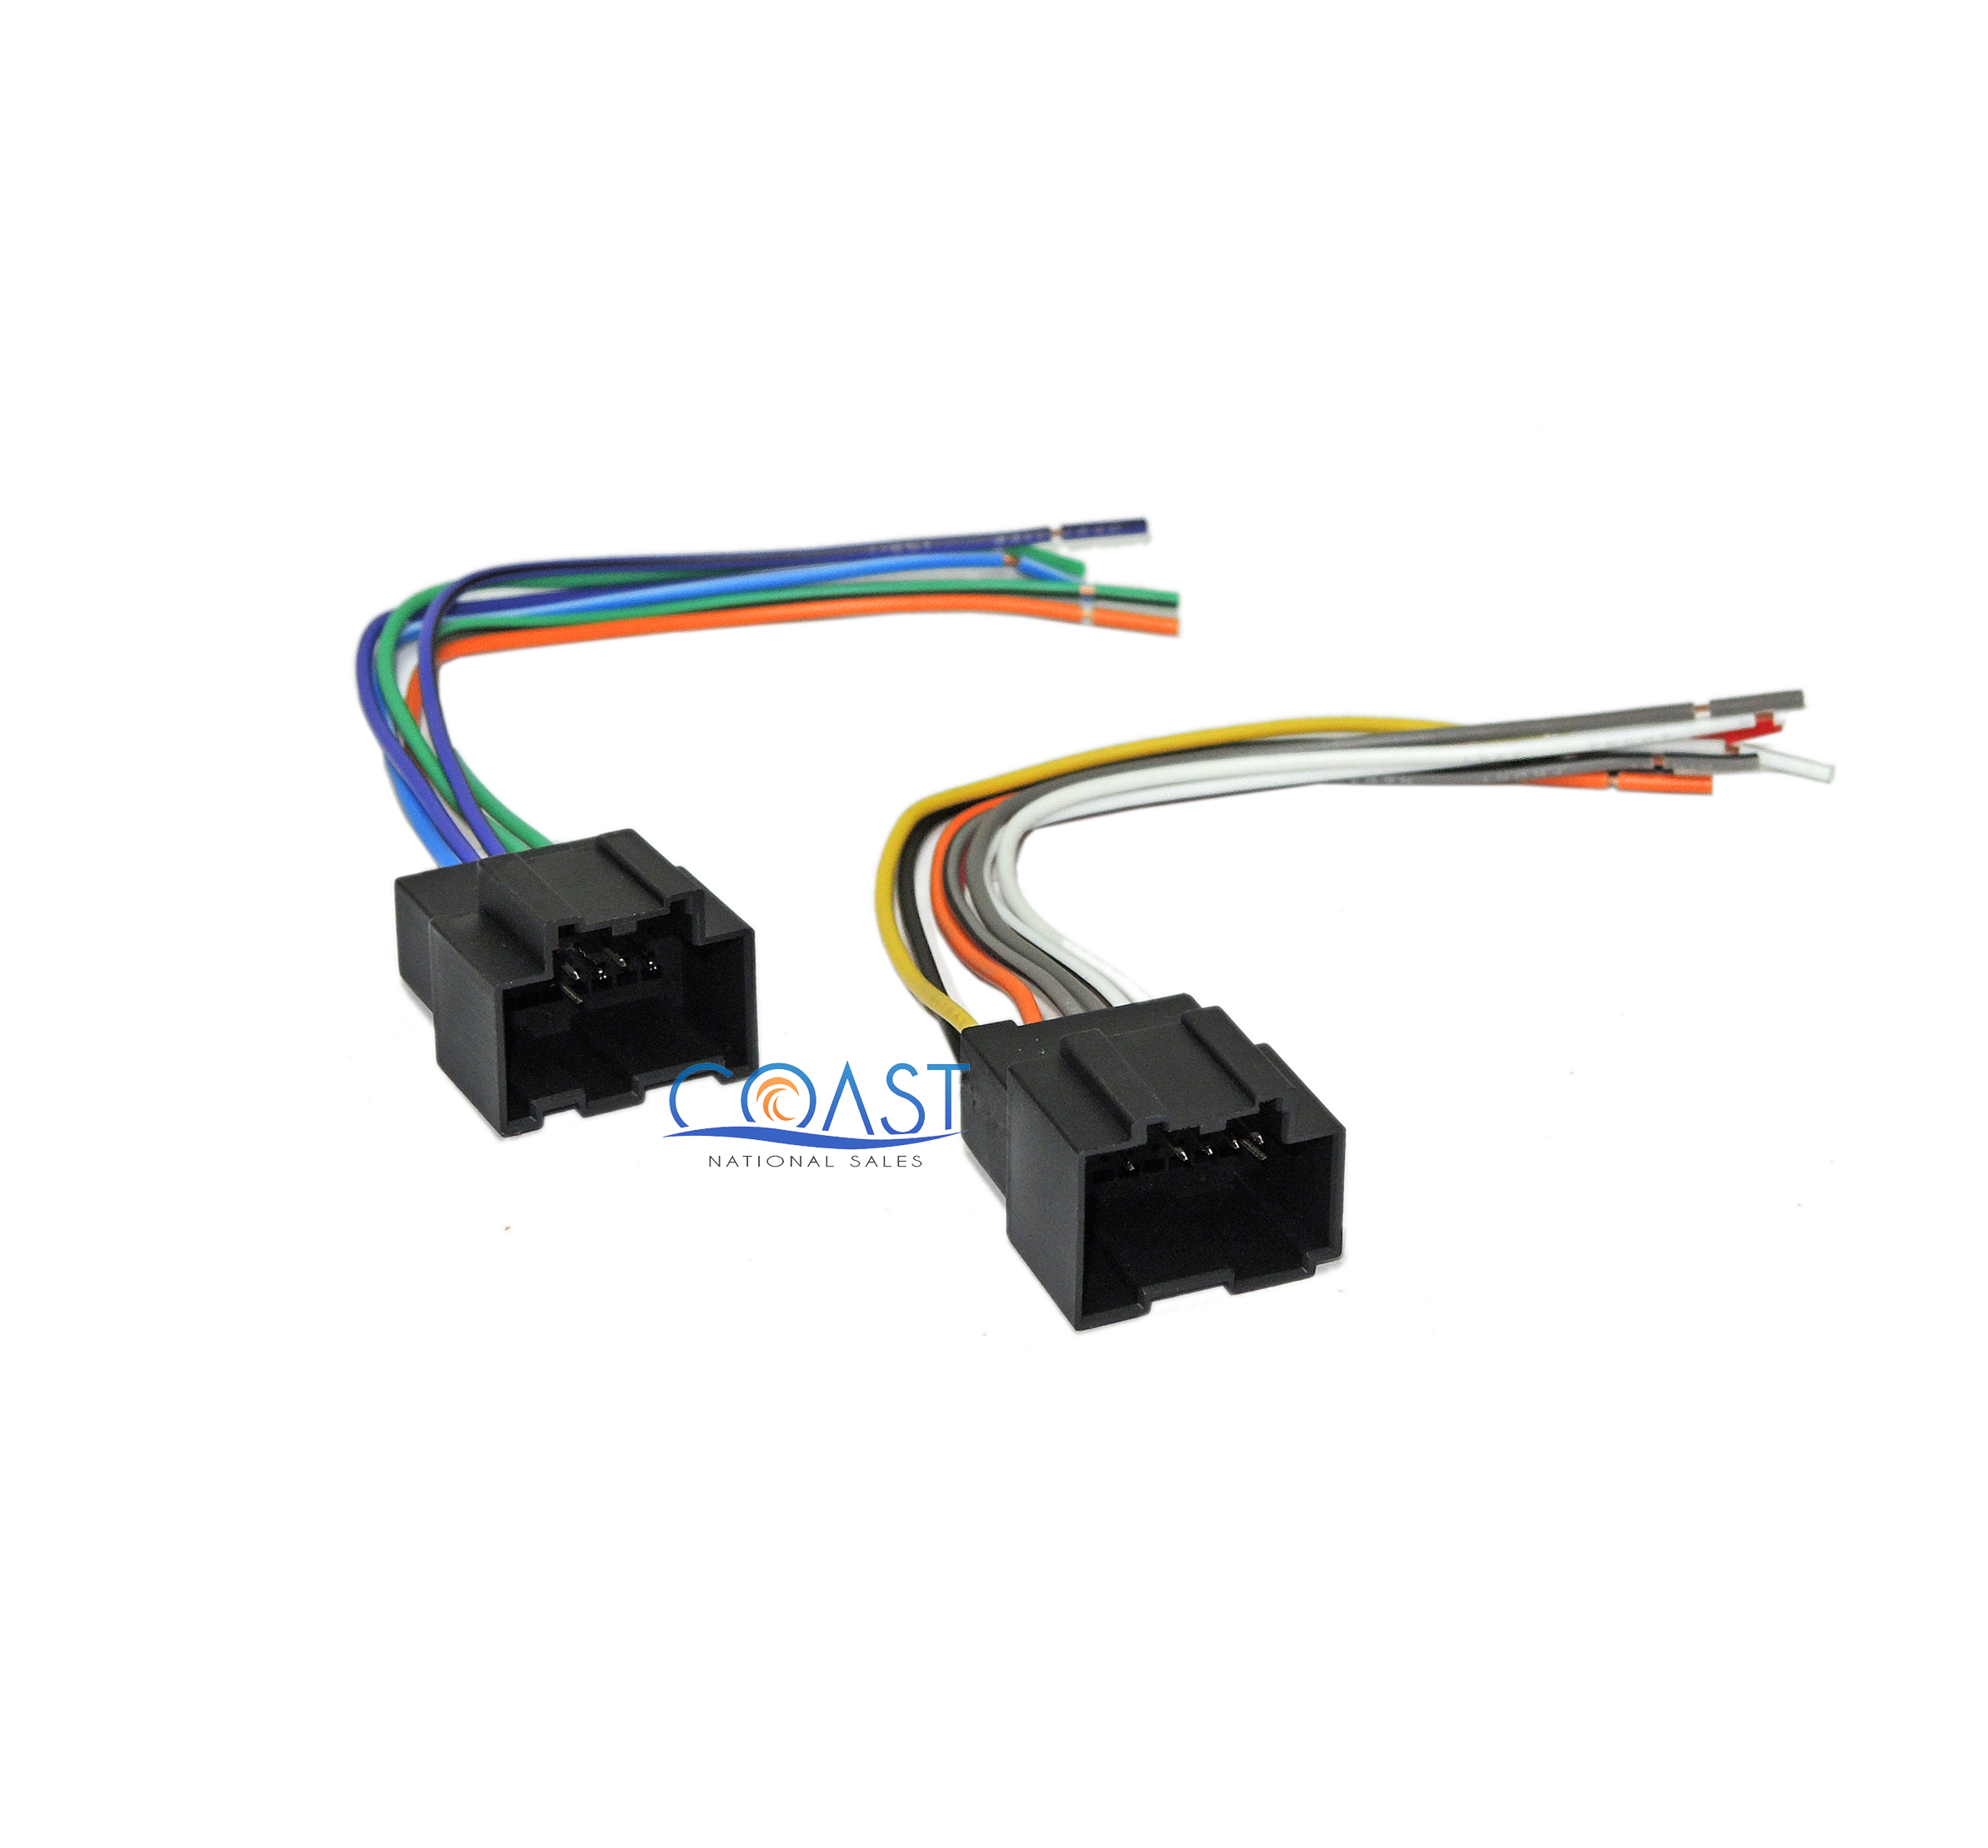 car stereo harness plugs into factory harness for 2006 ... 2006 saturn vue fuse diagram 2006 saturn vue stereo wiring